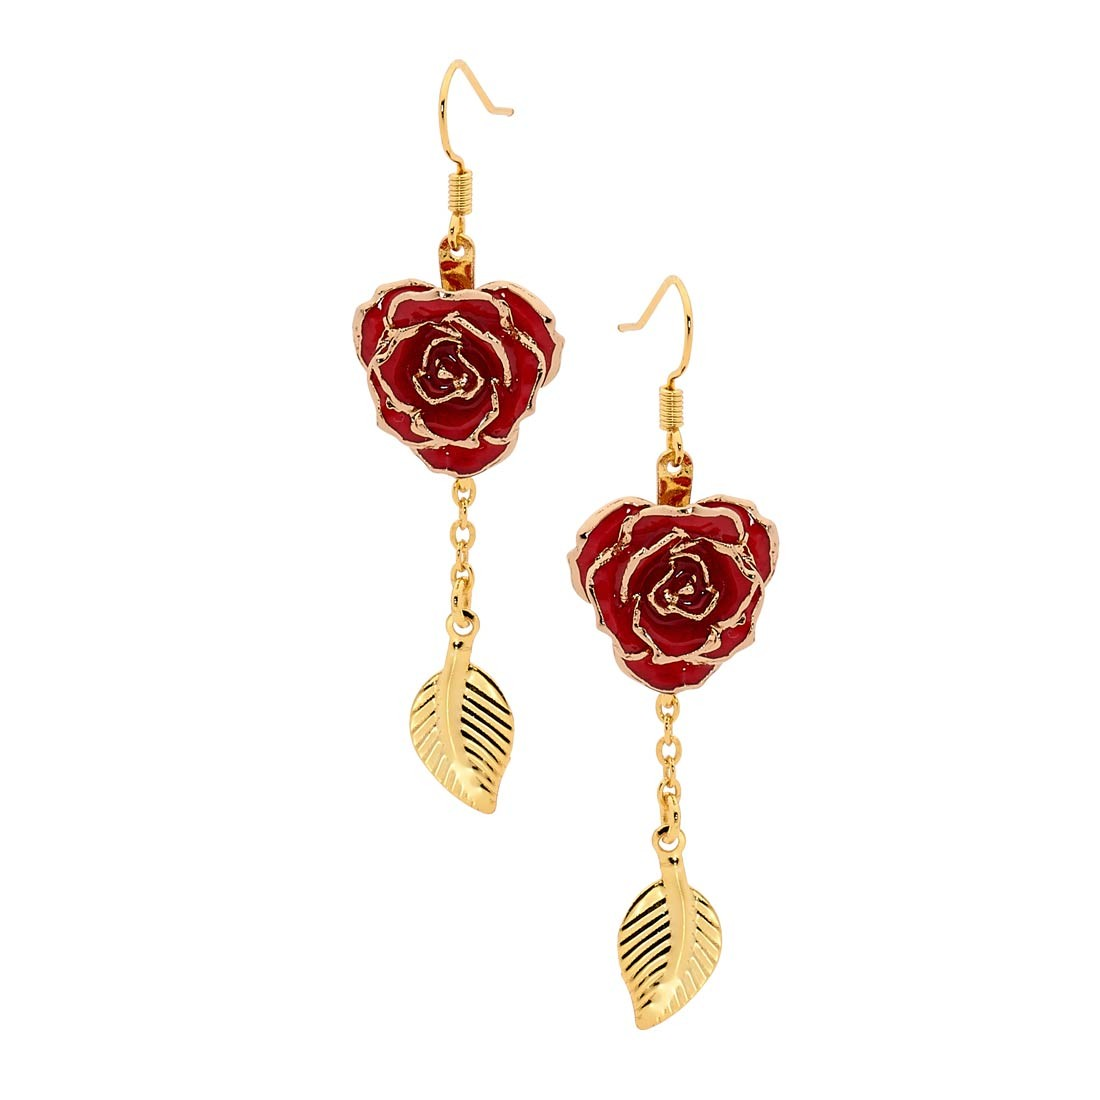 for day rose snow earring wk red flower defaith forever last gold anniversary great earrings birthday with of glod diamond gift s dipped made valentine mothers fresh zircon